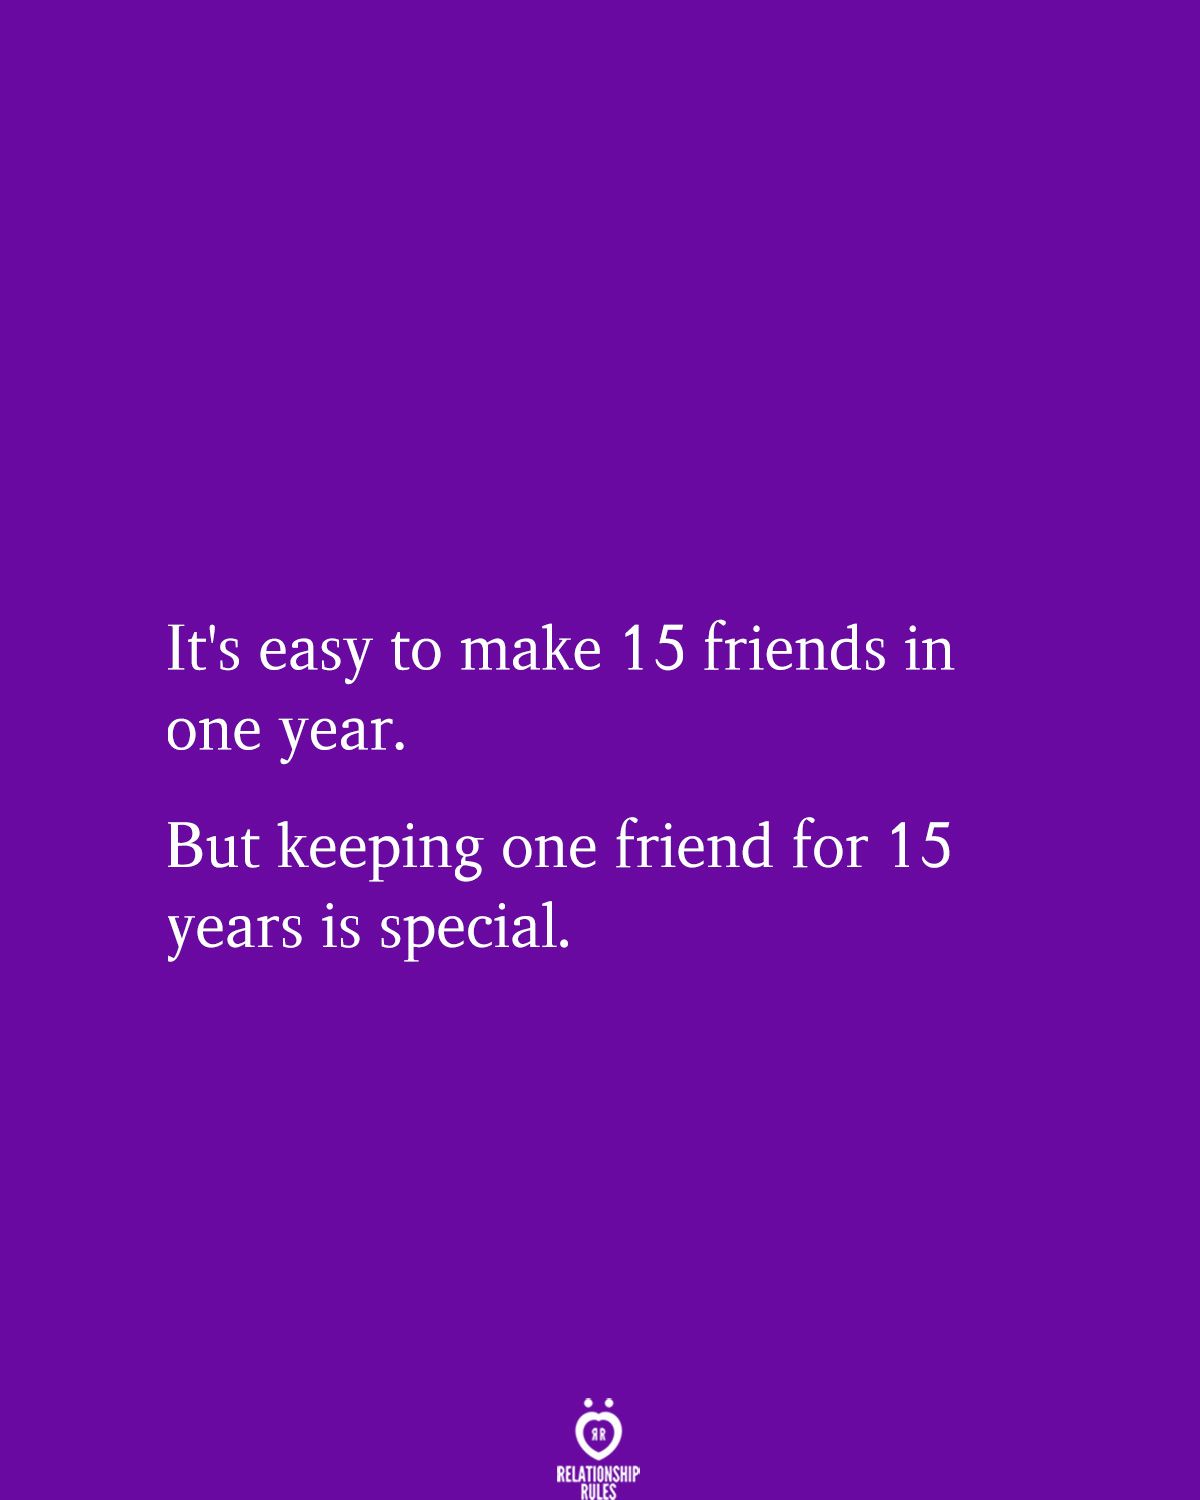 It S Easy To Make 15 Friends In One Year Friendship Quotes Images Best Friend Quotes Friends Quotes